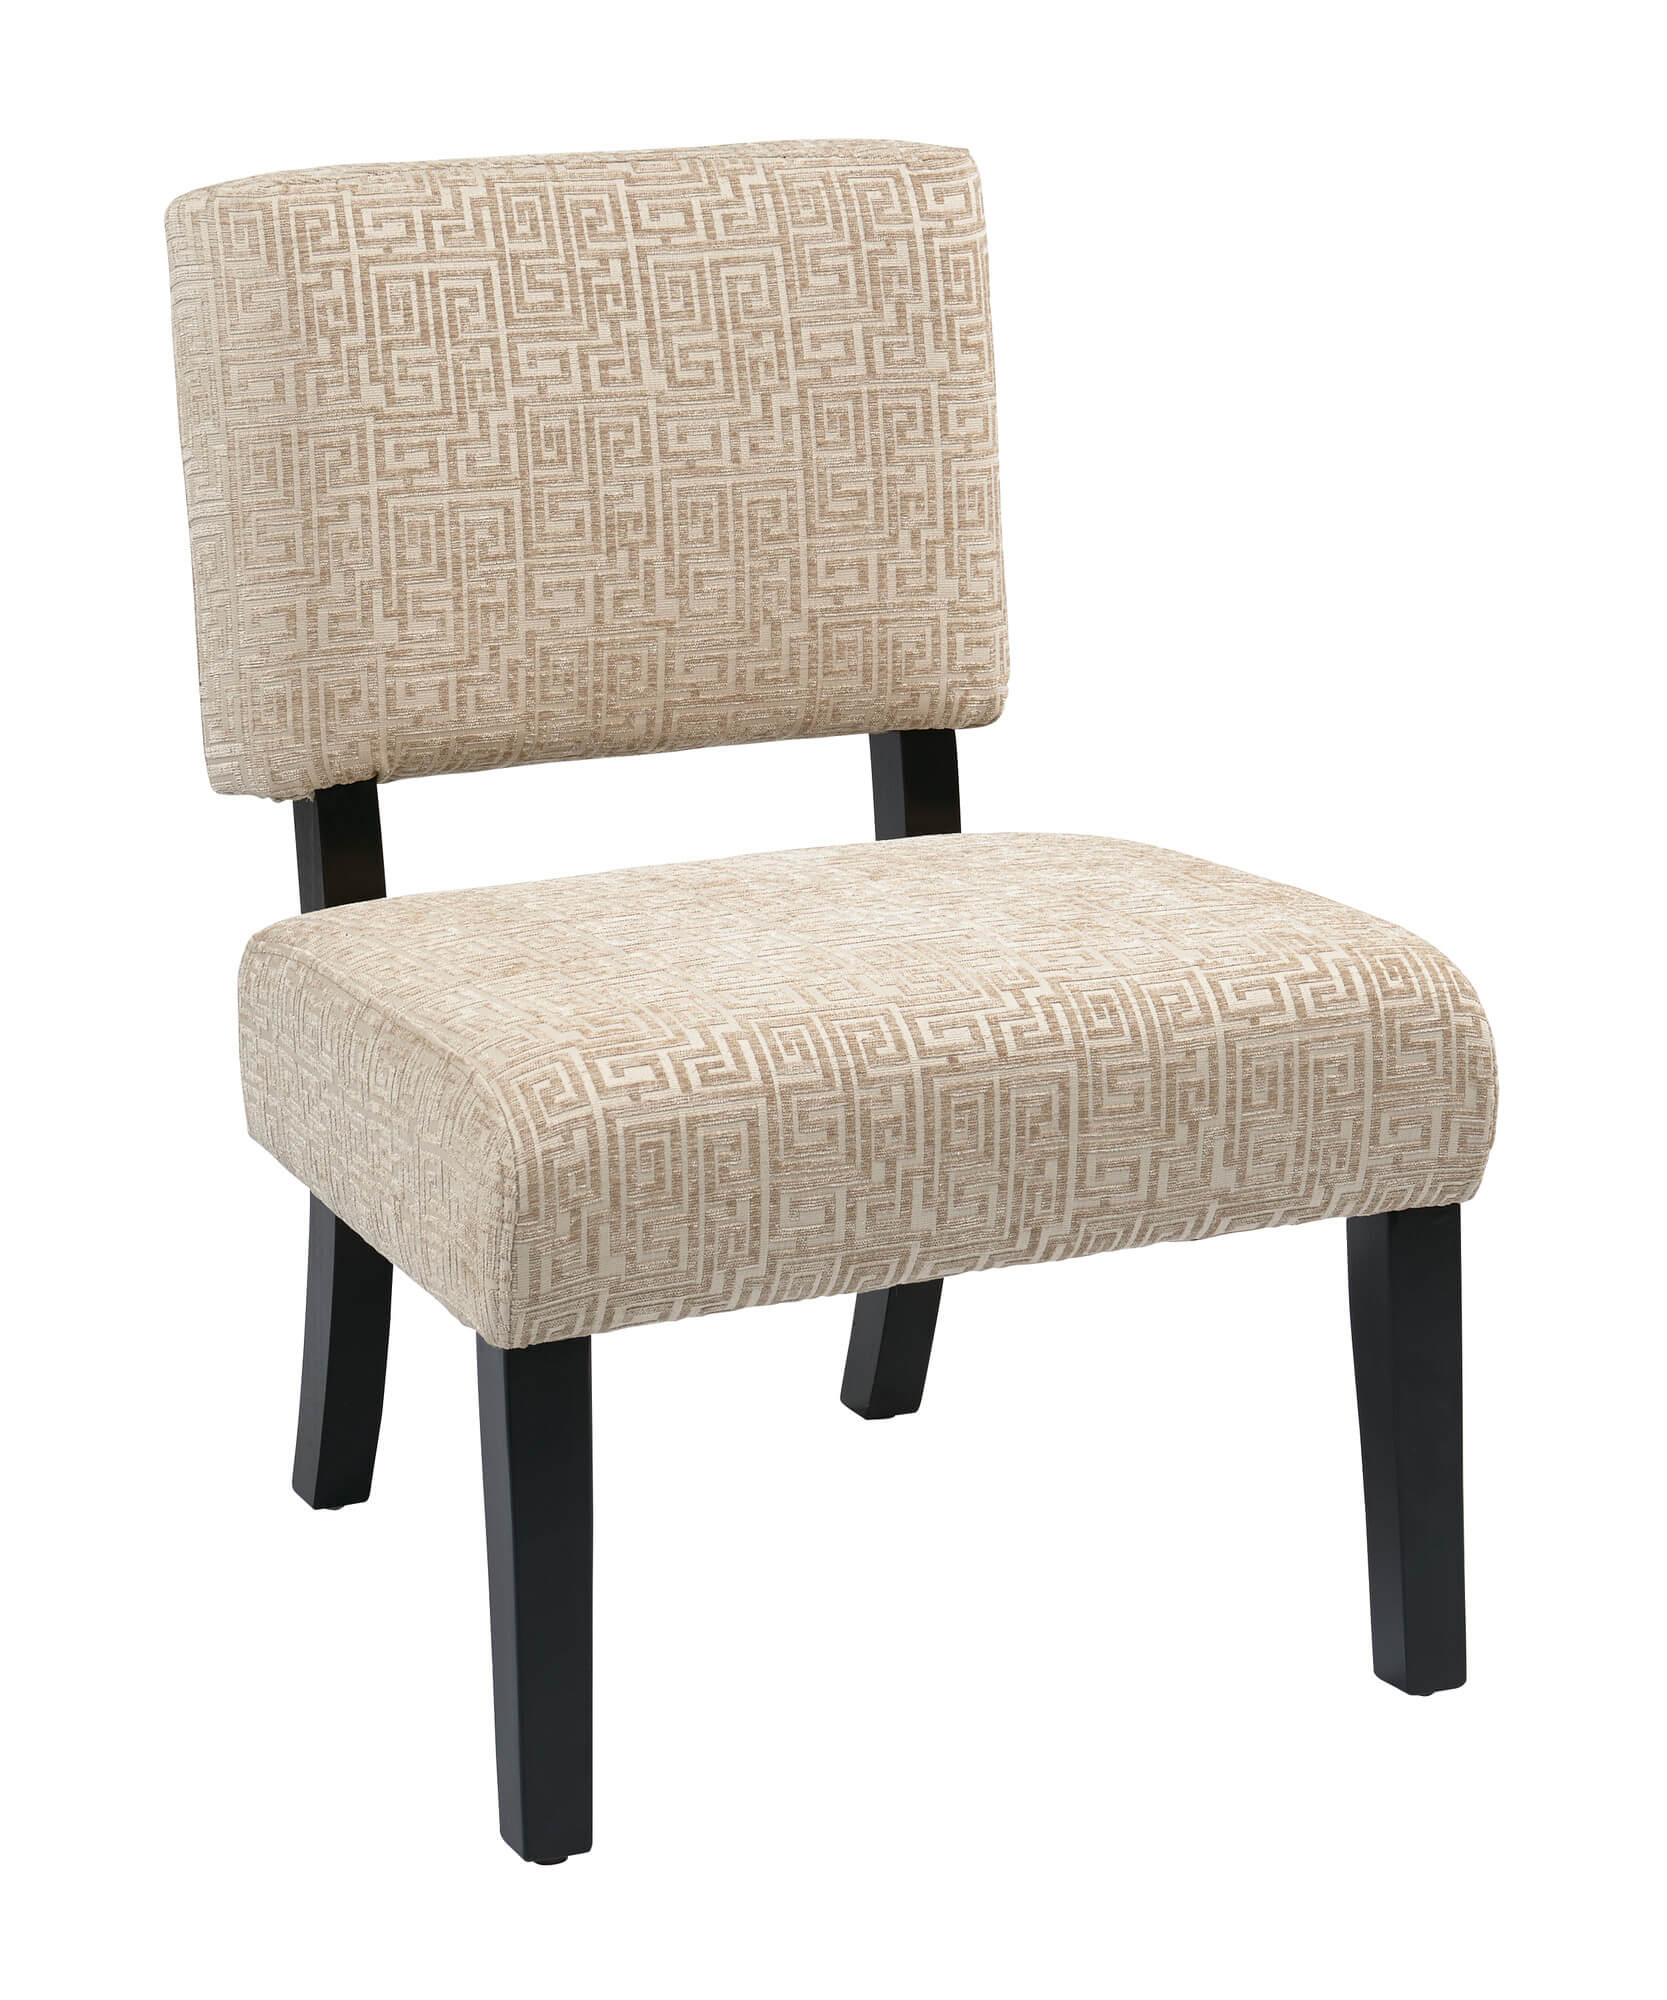 This accent chair is similar in design to other accent chairs in this ...